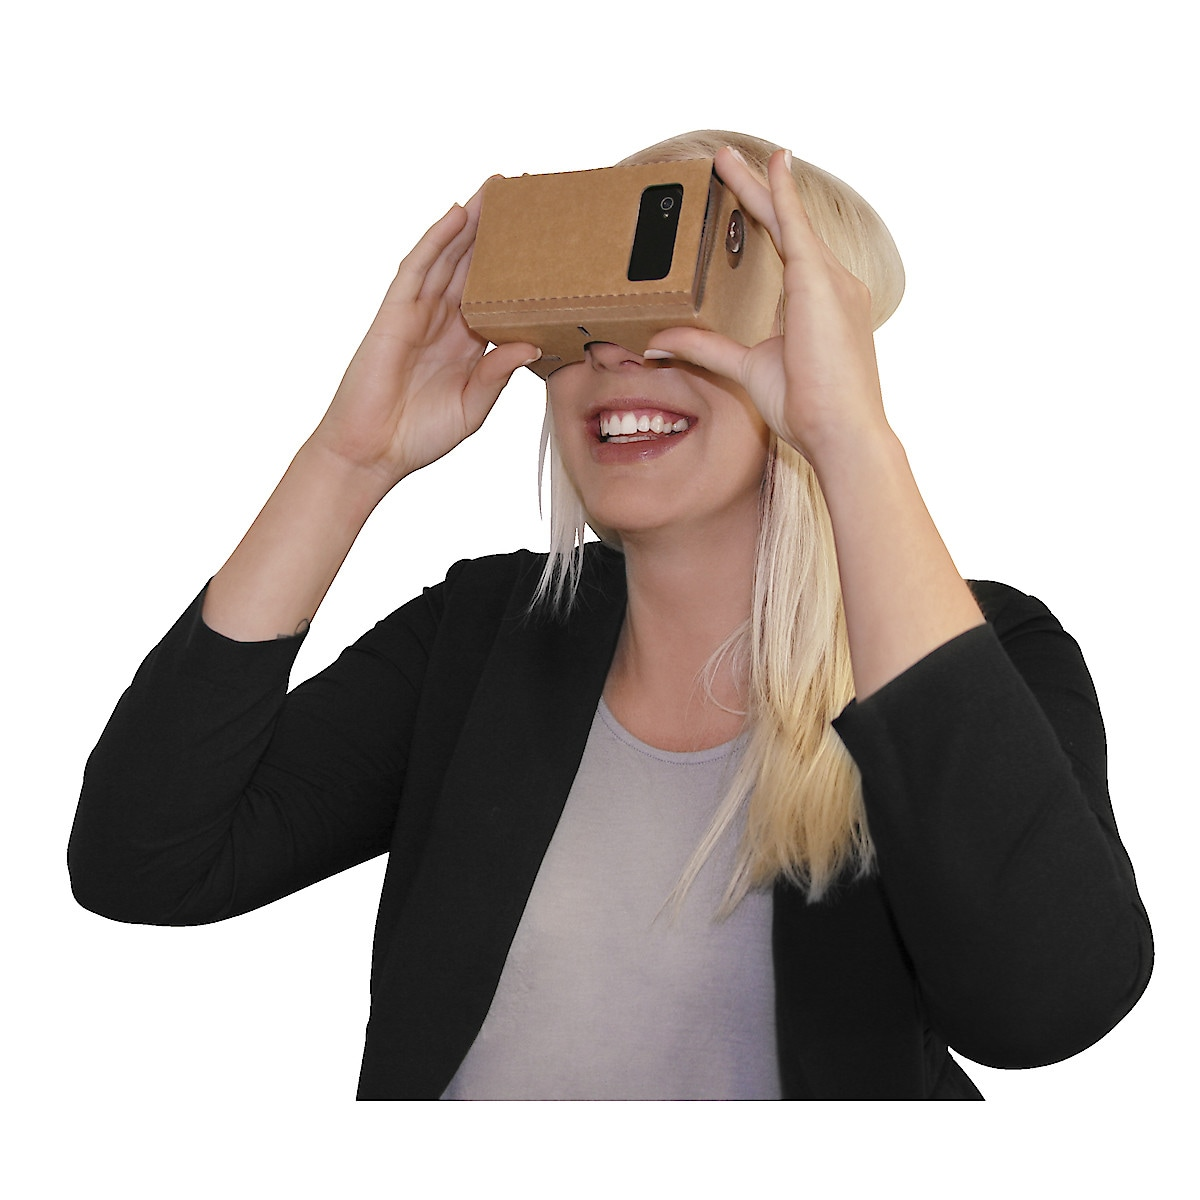 VR-brille for smartphone